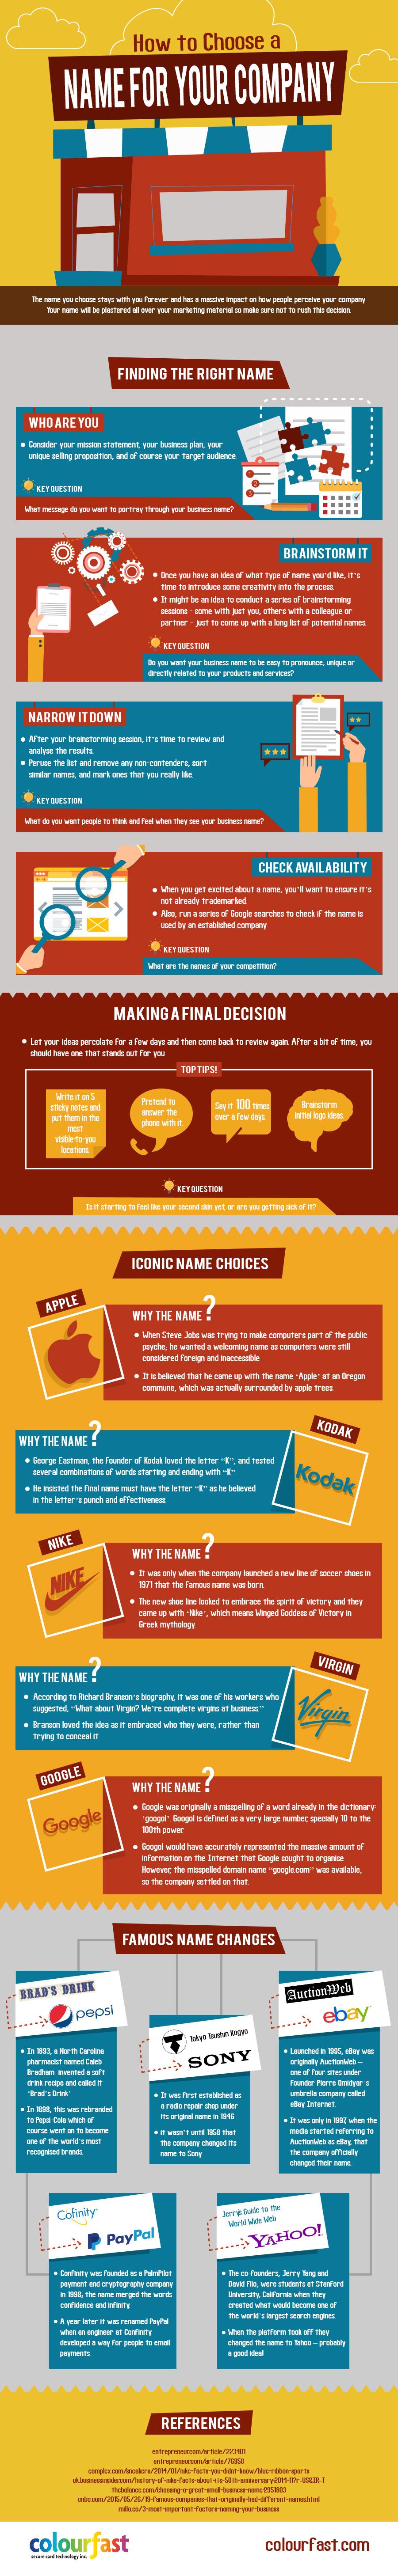 Chris Landry_ How-to-Choose-a-Name-for-Your-Company-Infographic